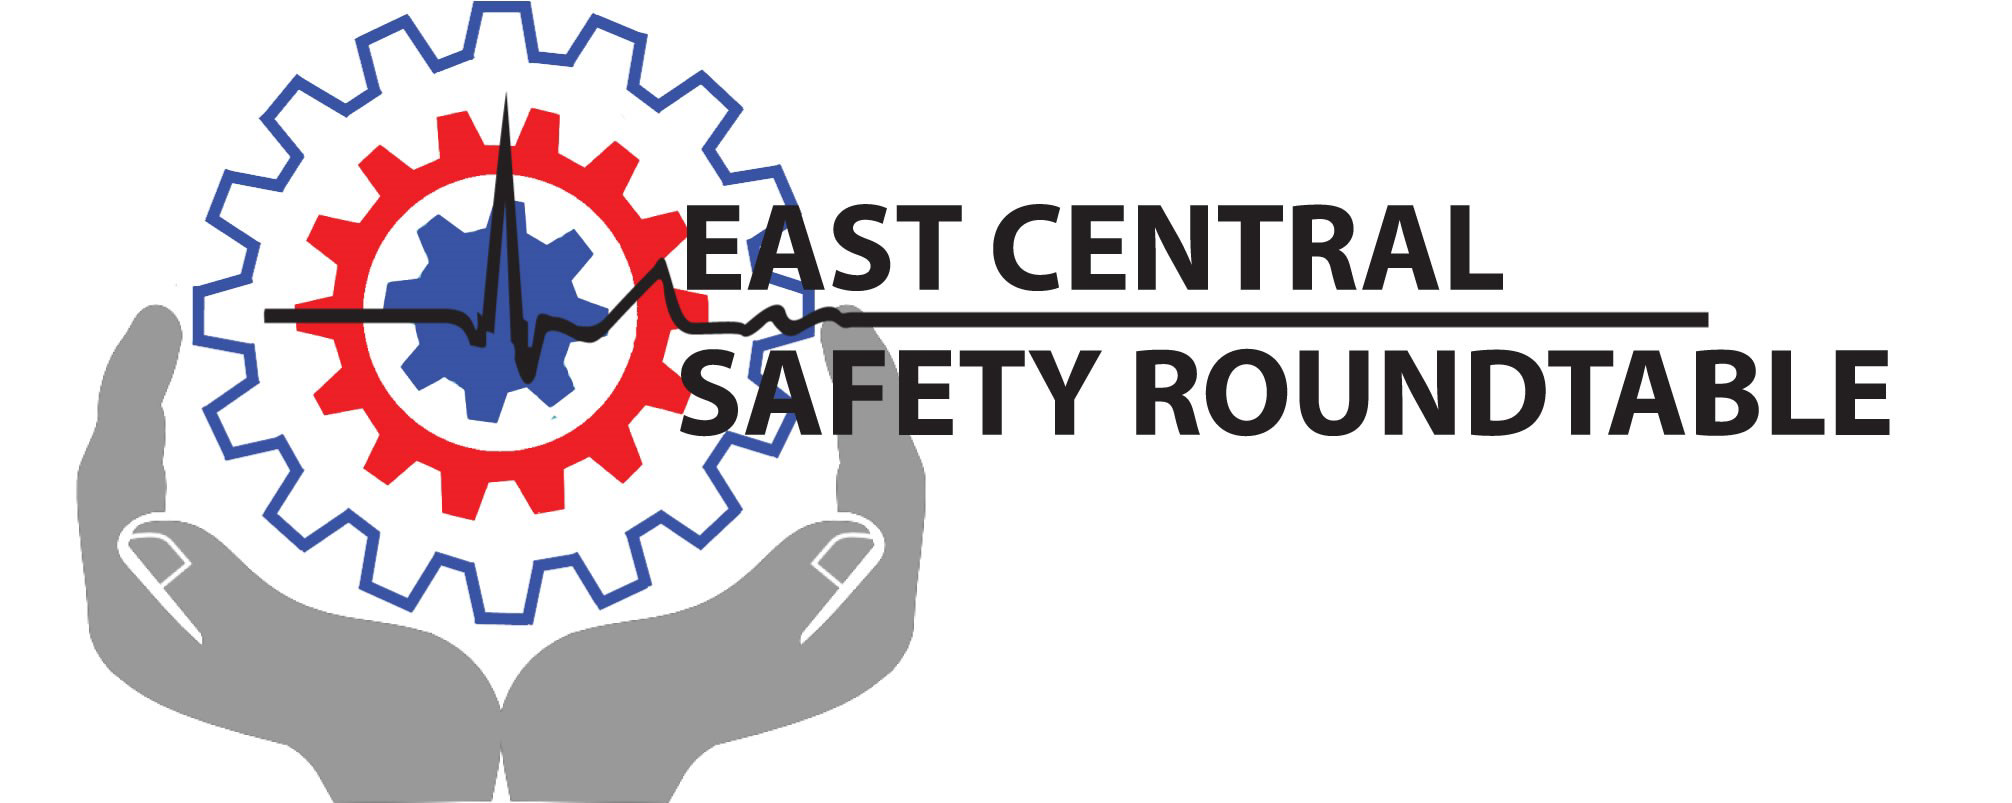 East Central Safety Roundtable